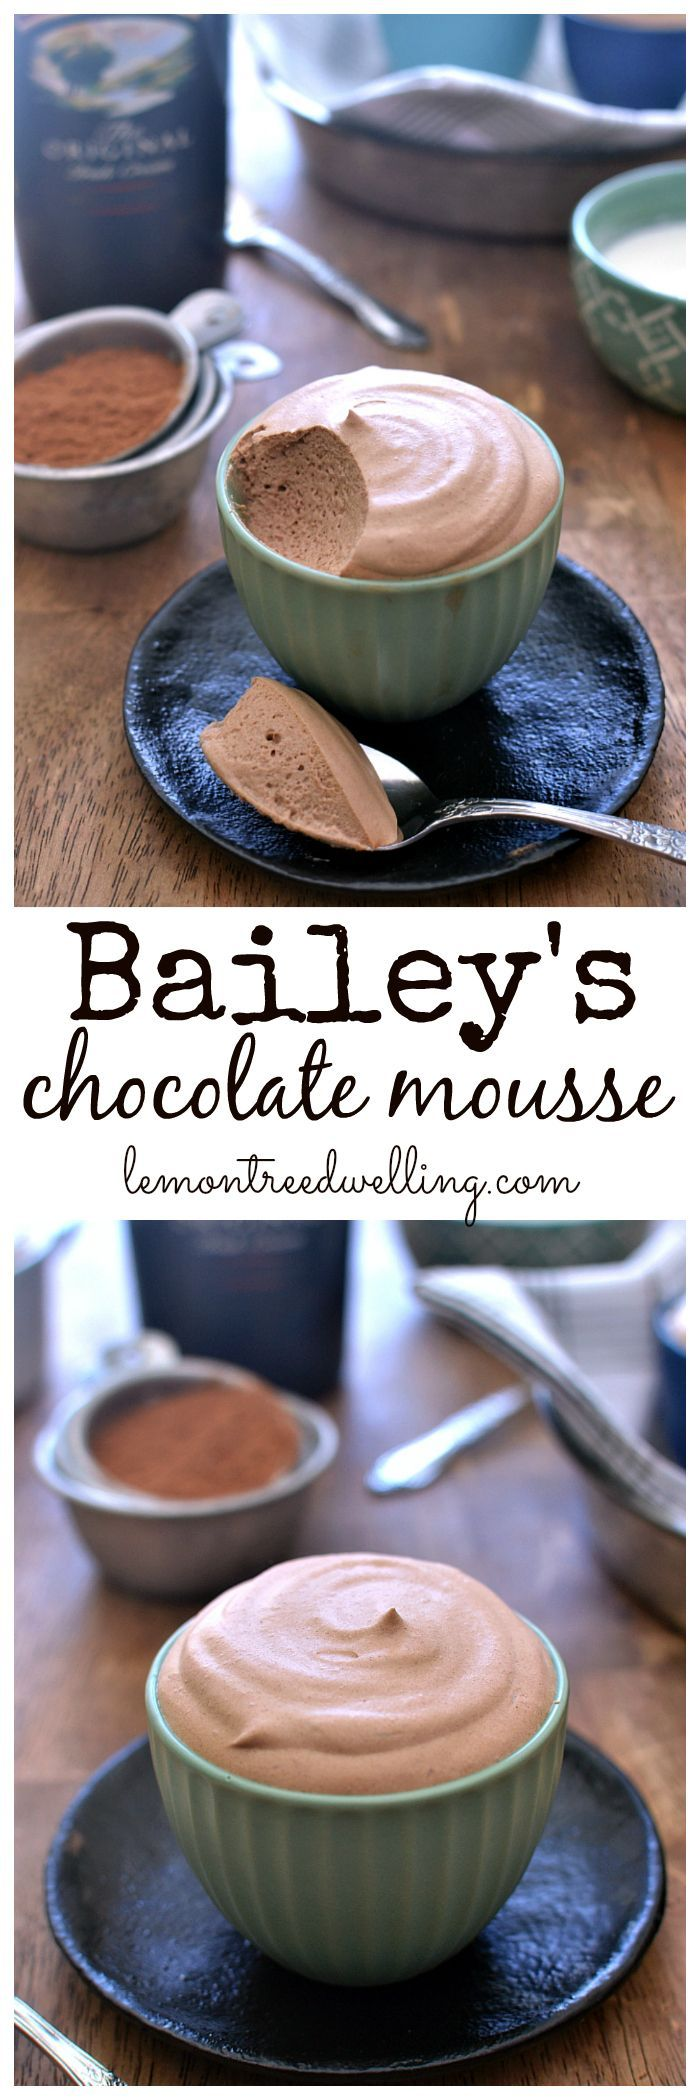 Bailey's Chocolate Mousse - à essayer absolument!!